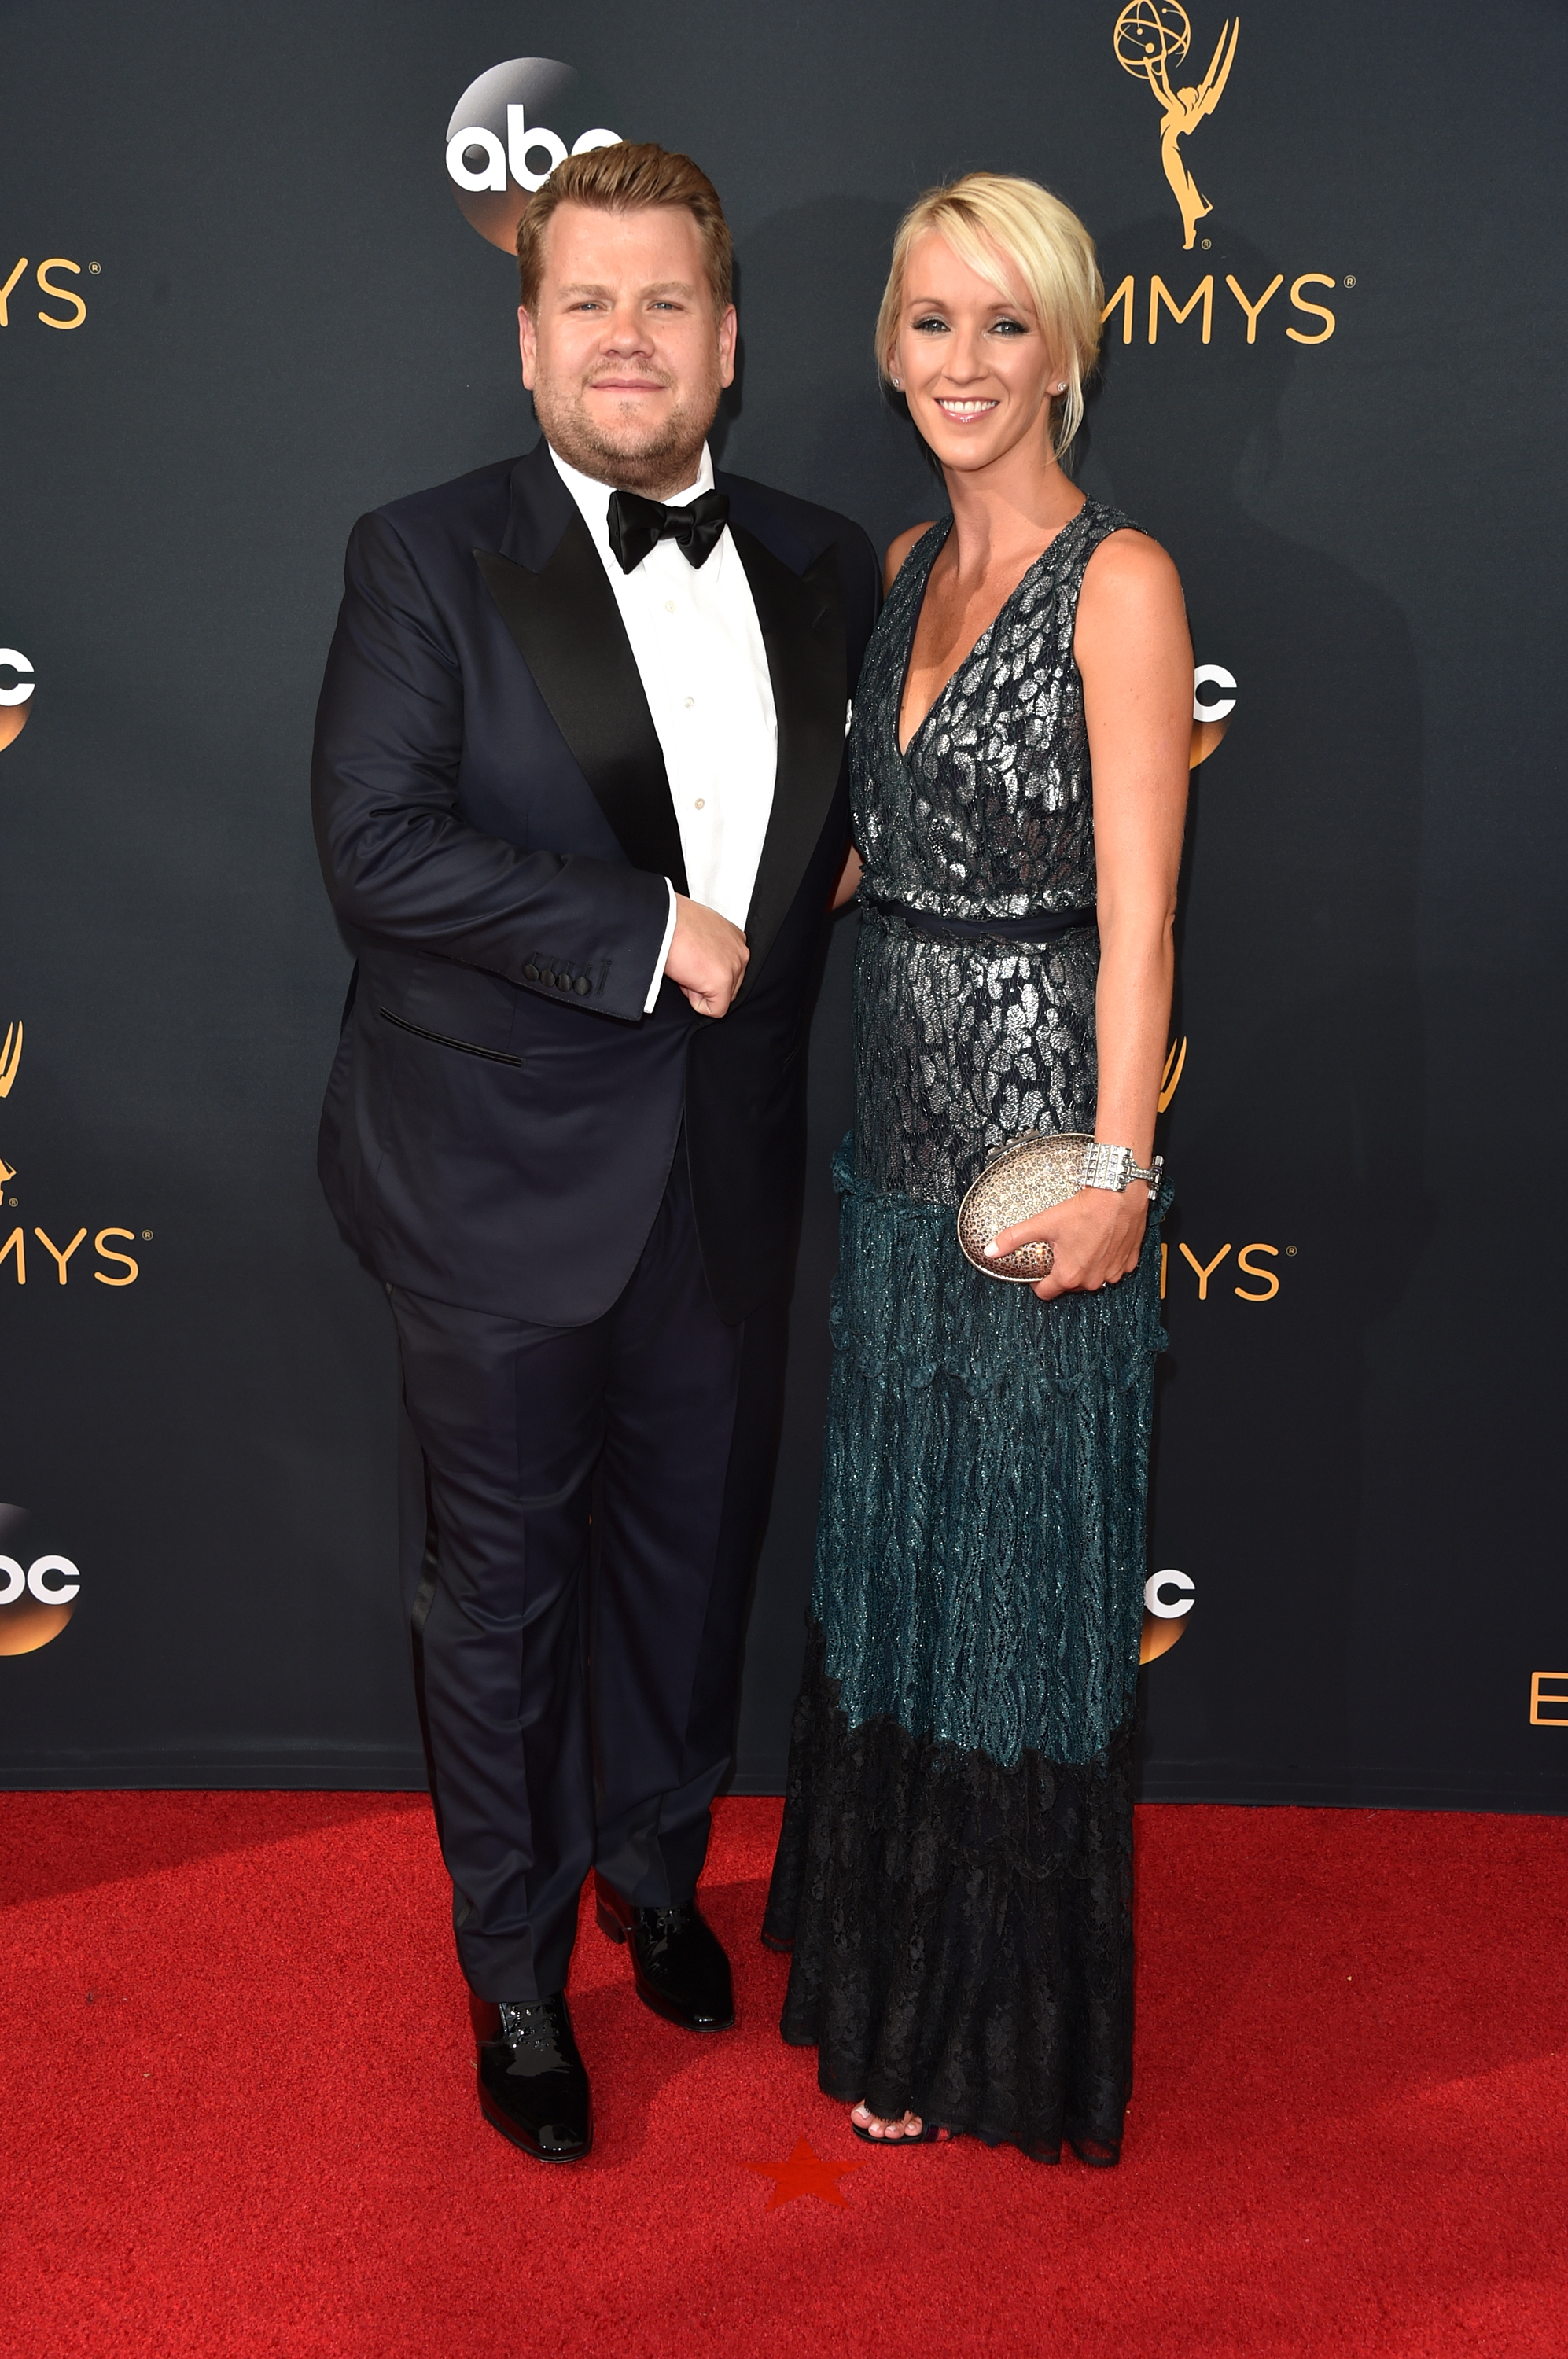 James Corden and Julia Carey arrive at the 68th Annual Primetime Emmy Awards at Microsoft Theater on Sept. 18, 2016 in Los Angeles.